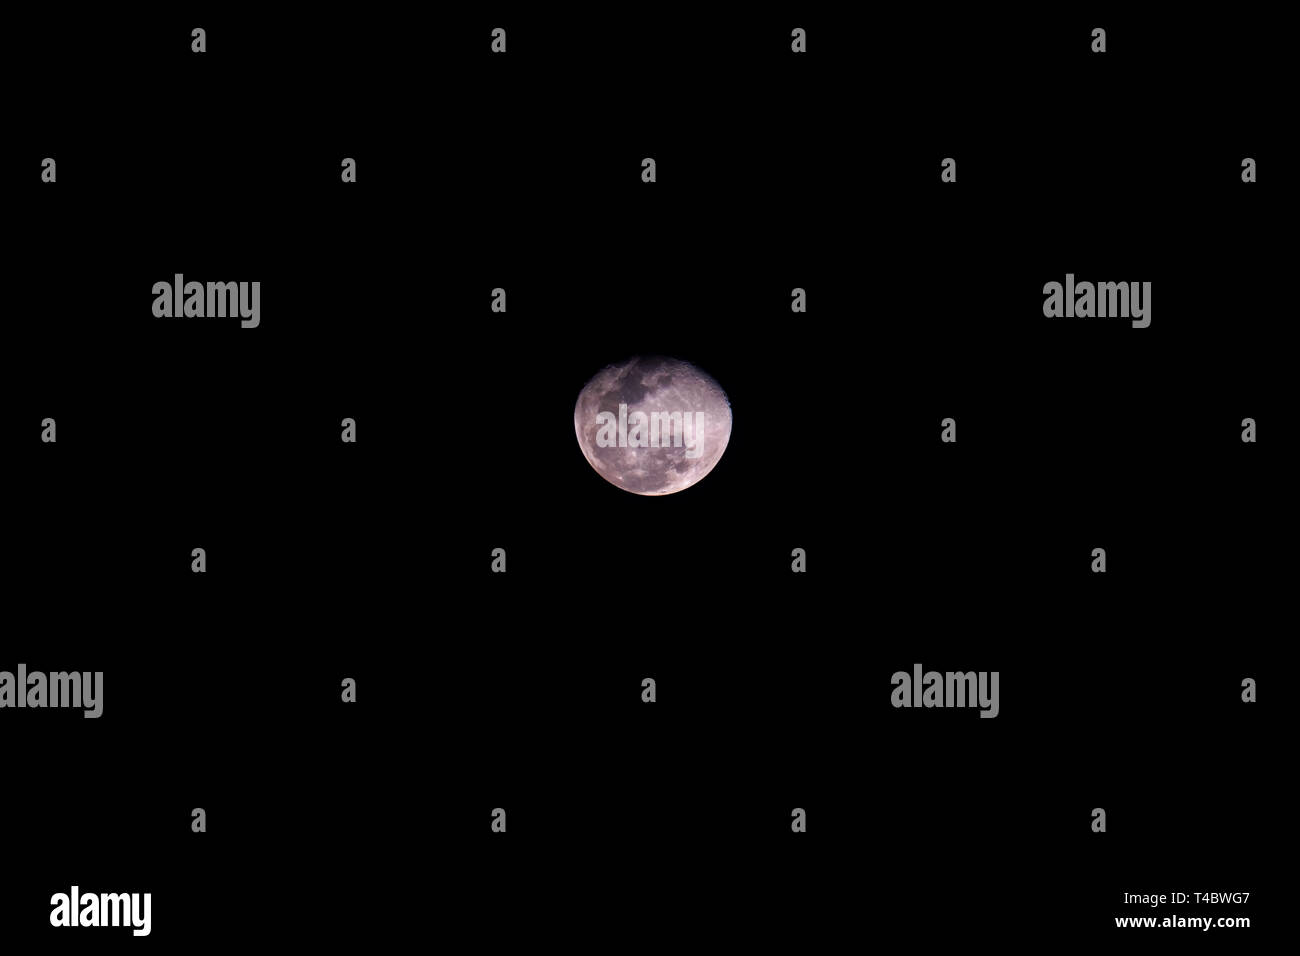 Full moon black background backdrop detail surface copy space - Stock Image